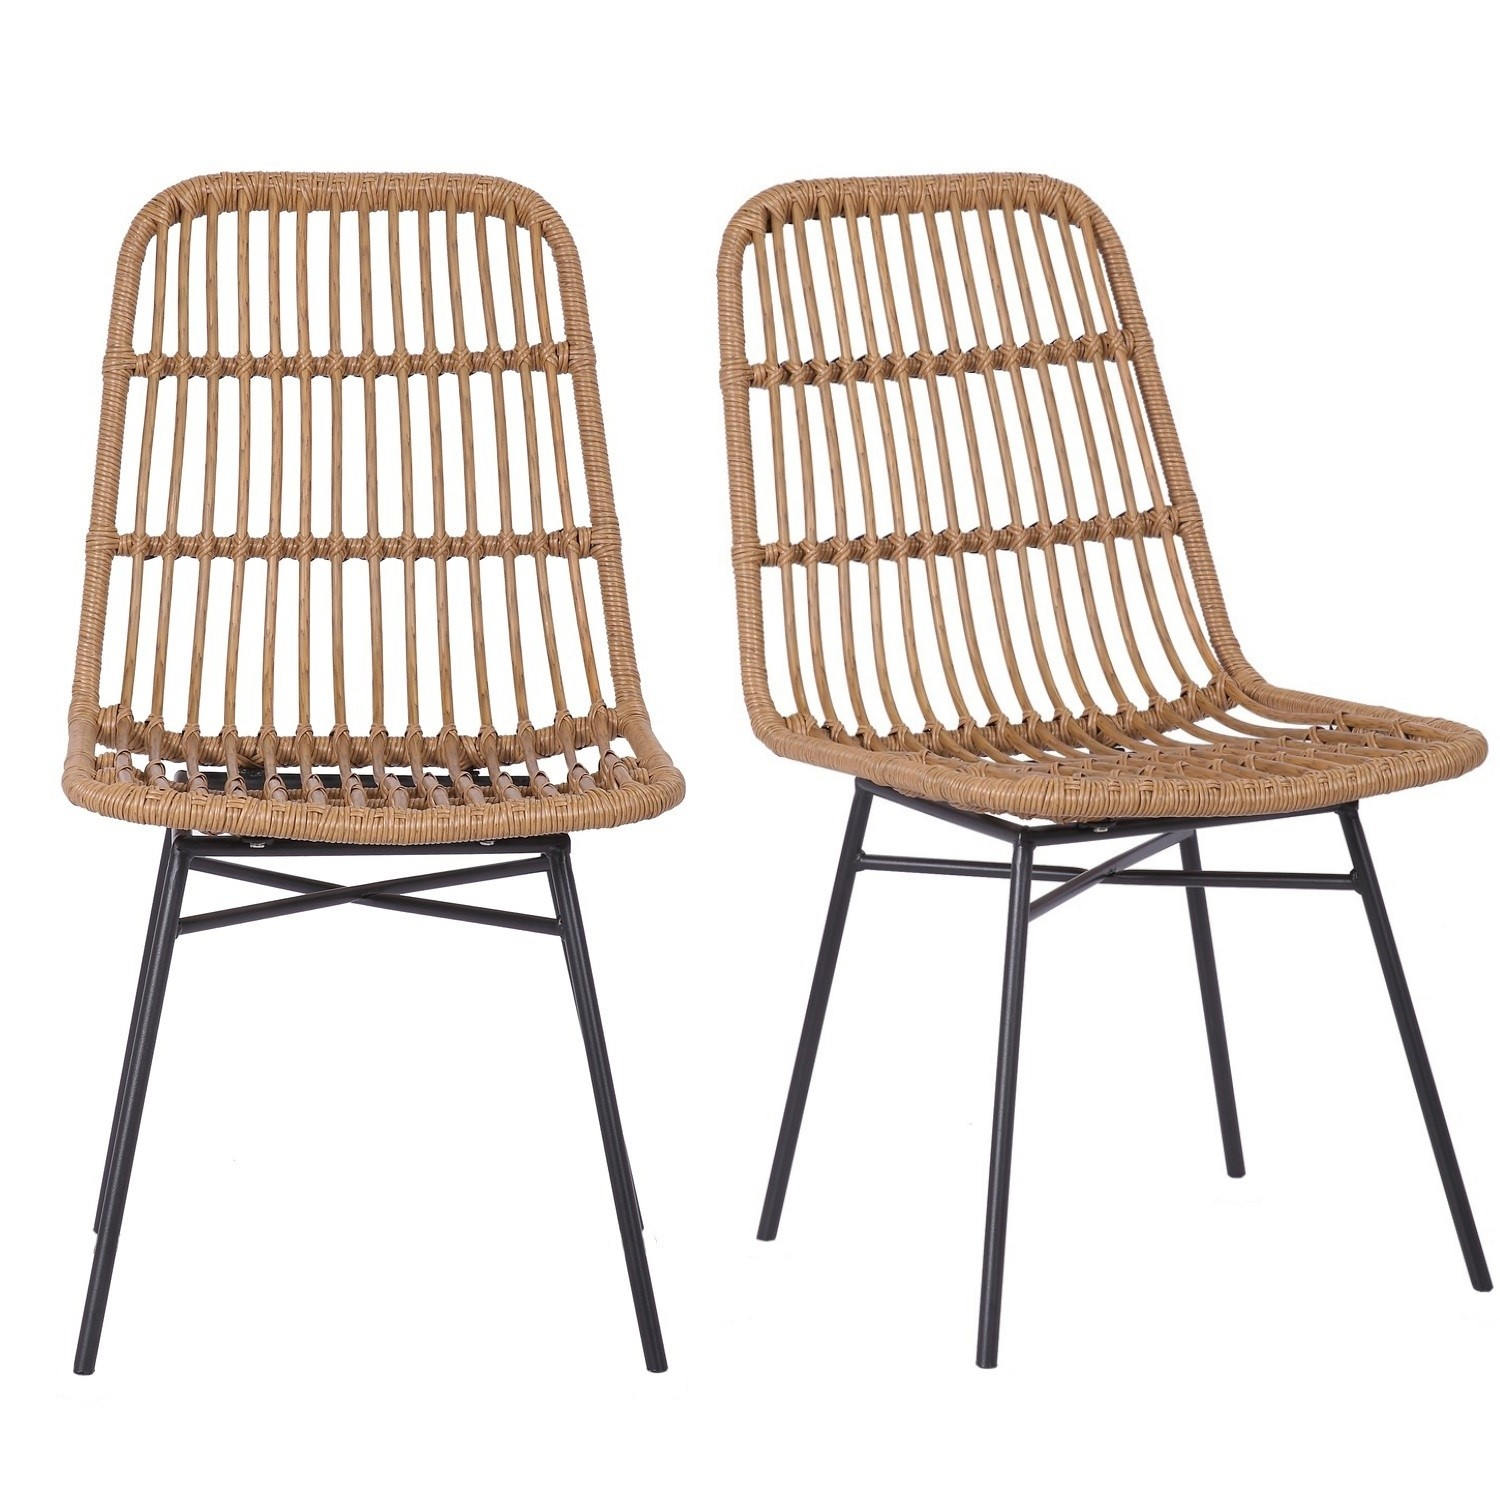 Photo of Pair of brown rattan dining chairs - fion